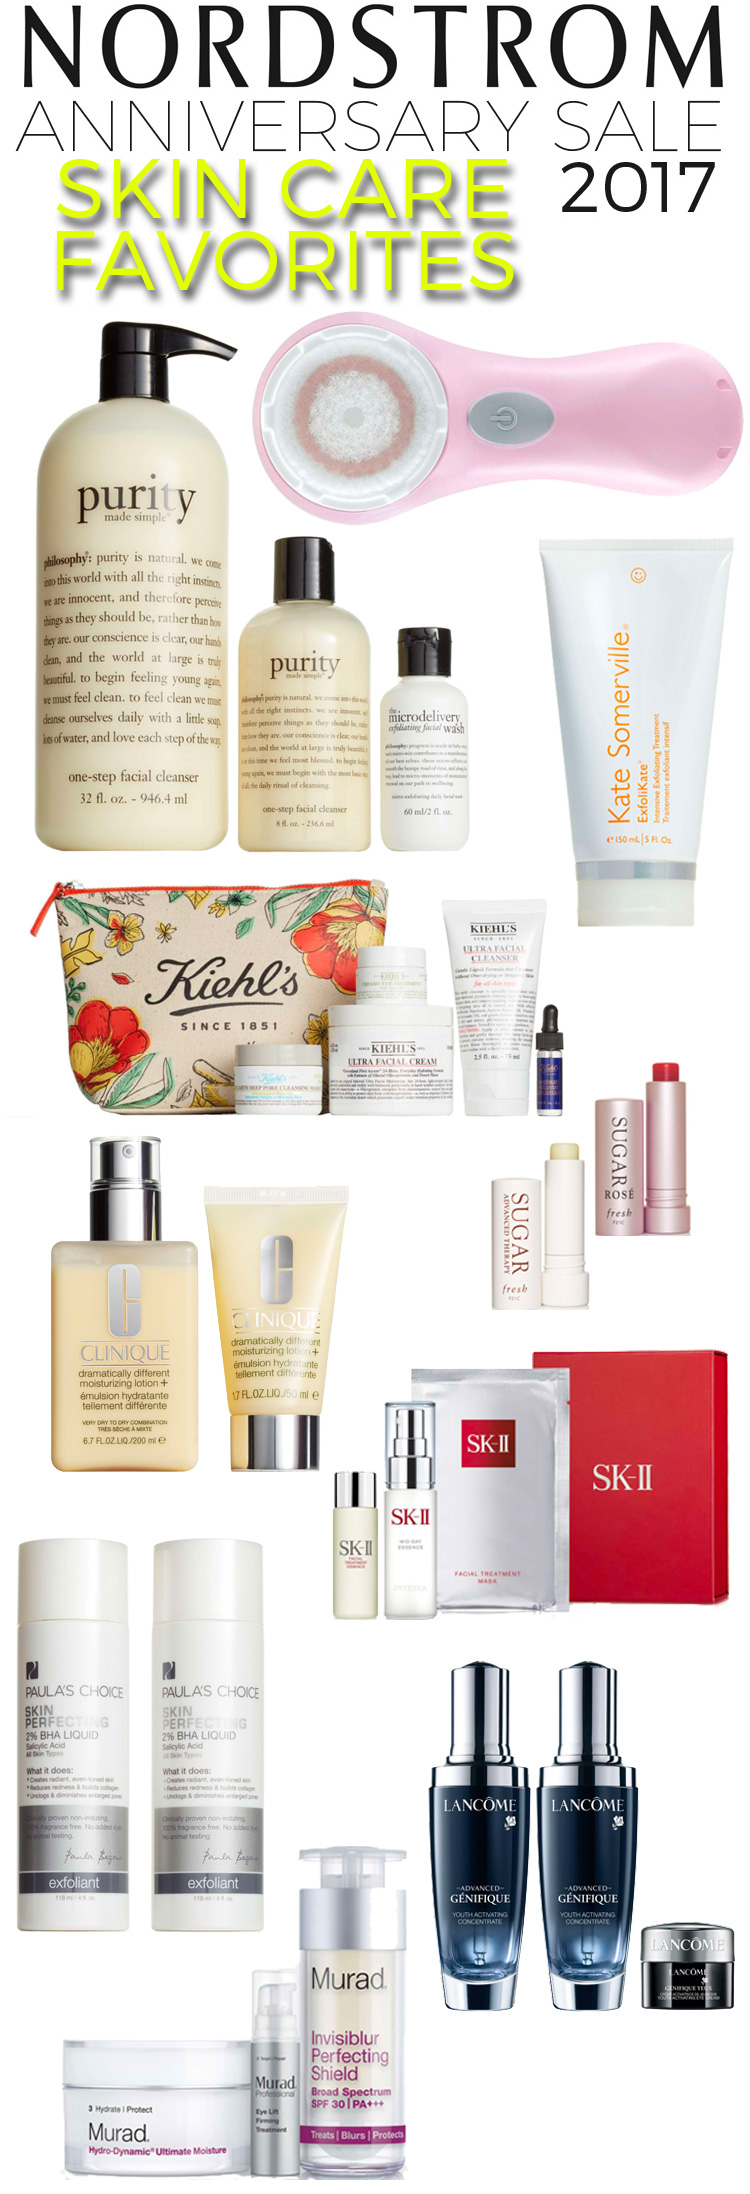 Nordstrom Anniversary Sale 2017: 10 Skincare Favorites